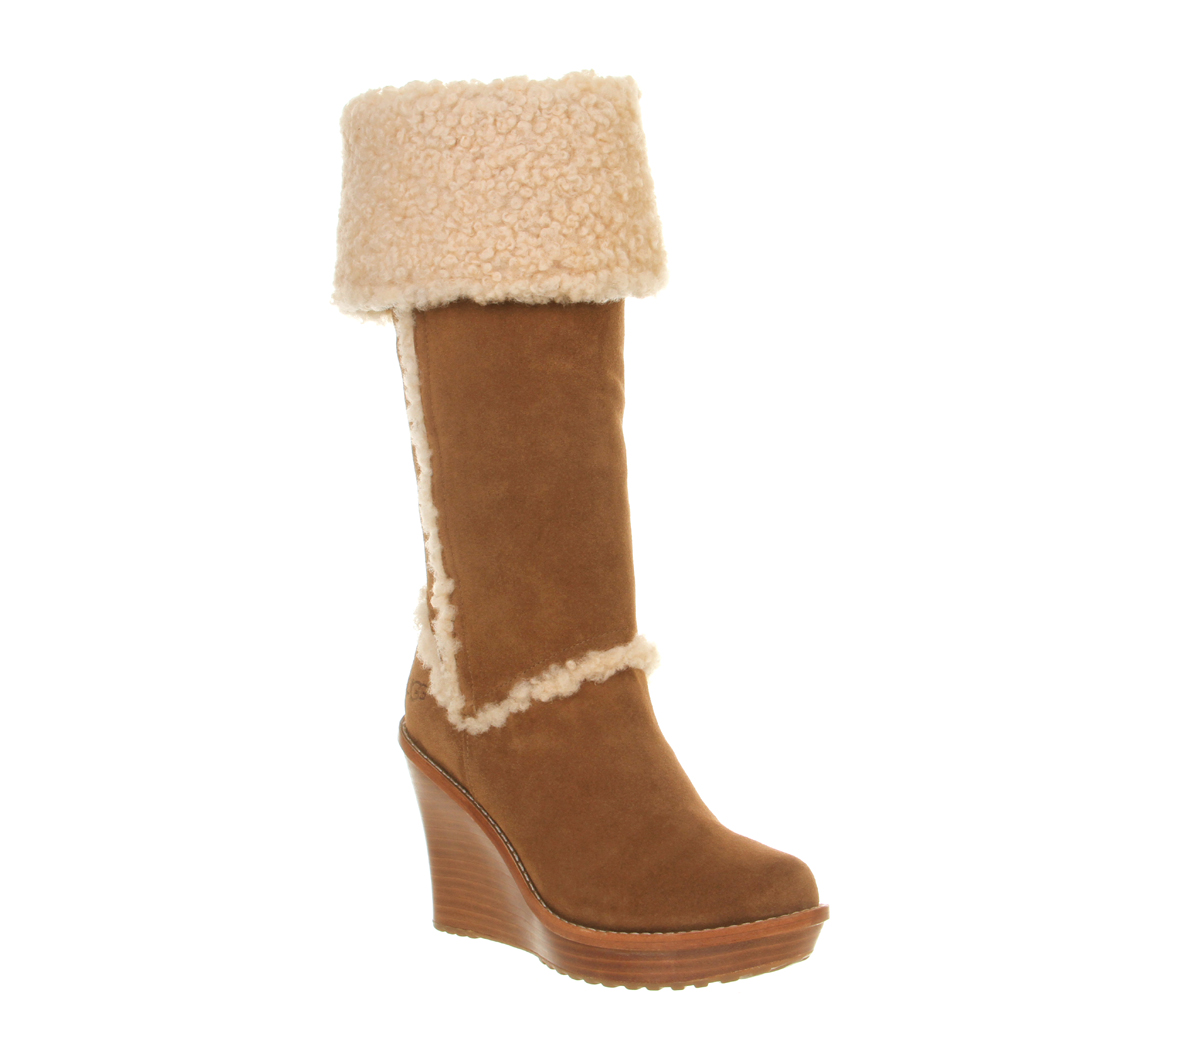 ugg aubrie wedge shearling knee boot in brown chestnut